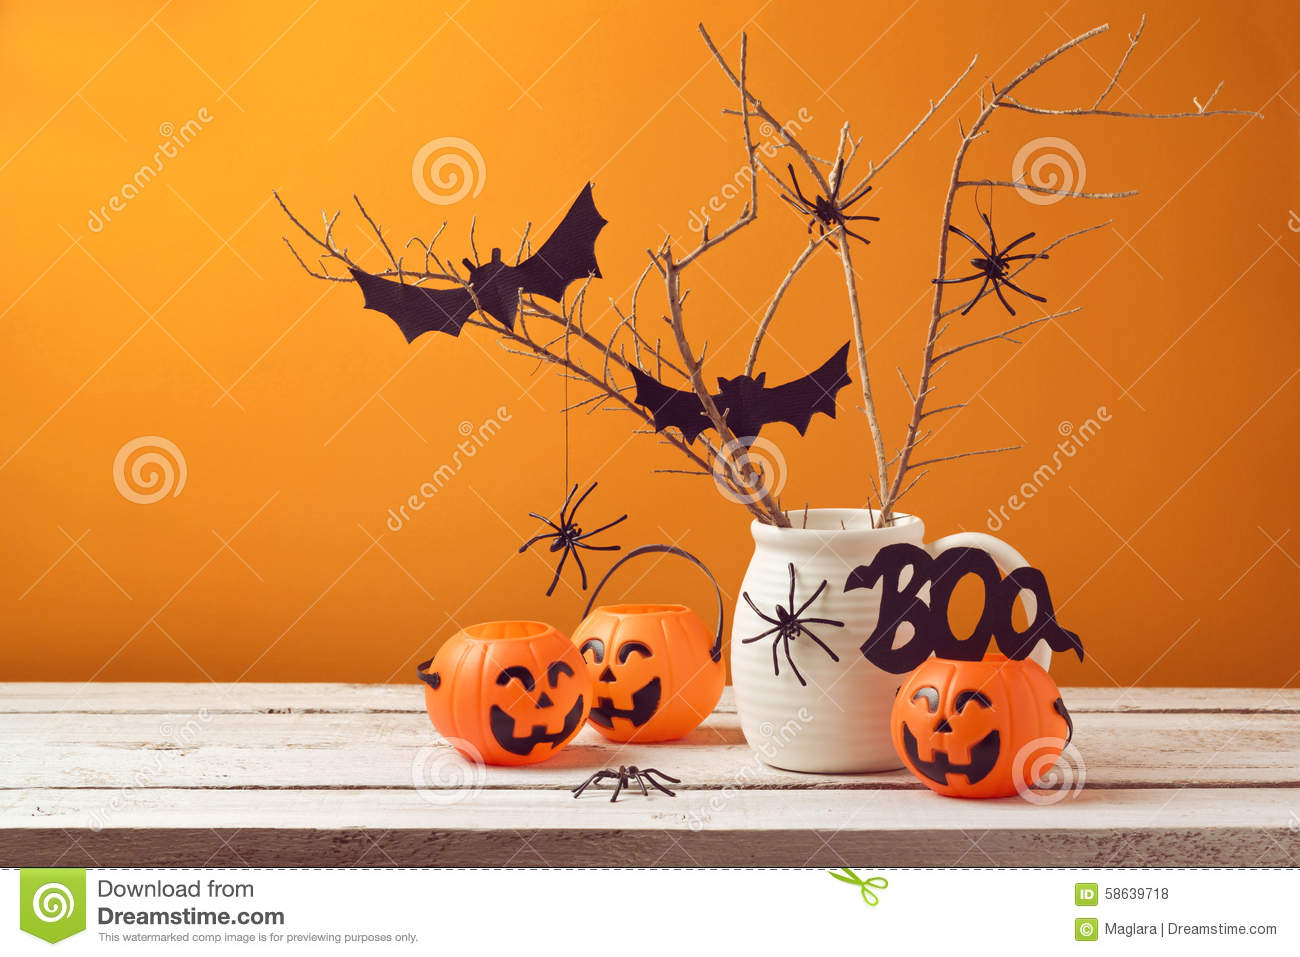 halloween autoguident des d corations avec les araign es et le seau de potiron photo stock. Black Bedroom Furniture Sets. Home Design Ideas